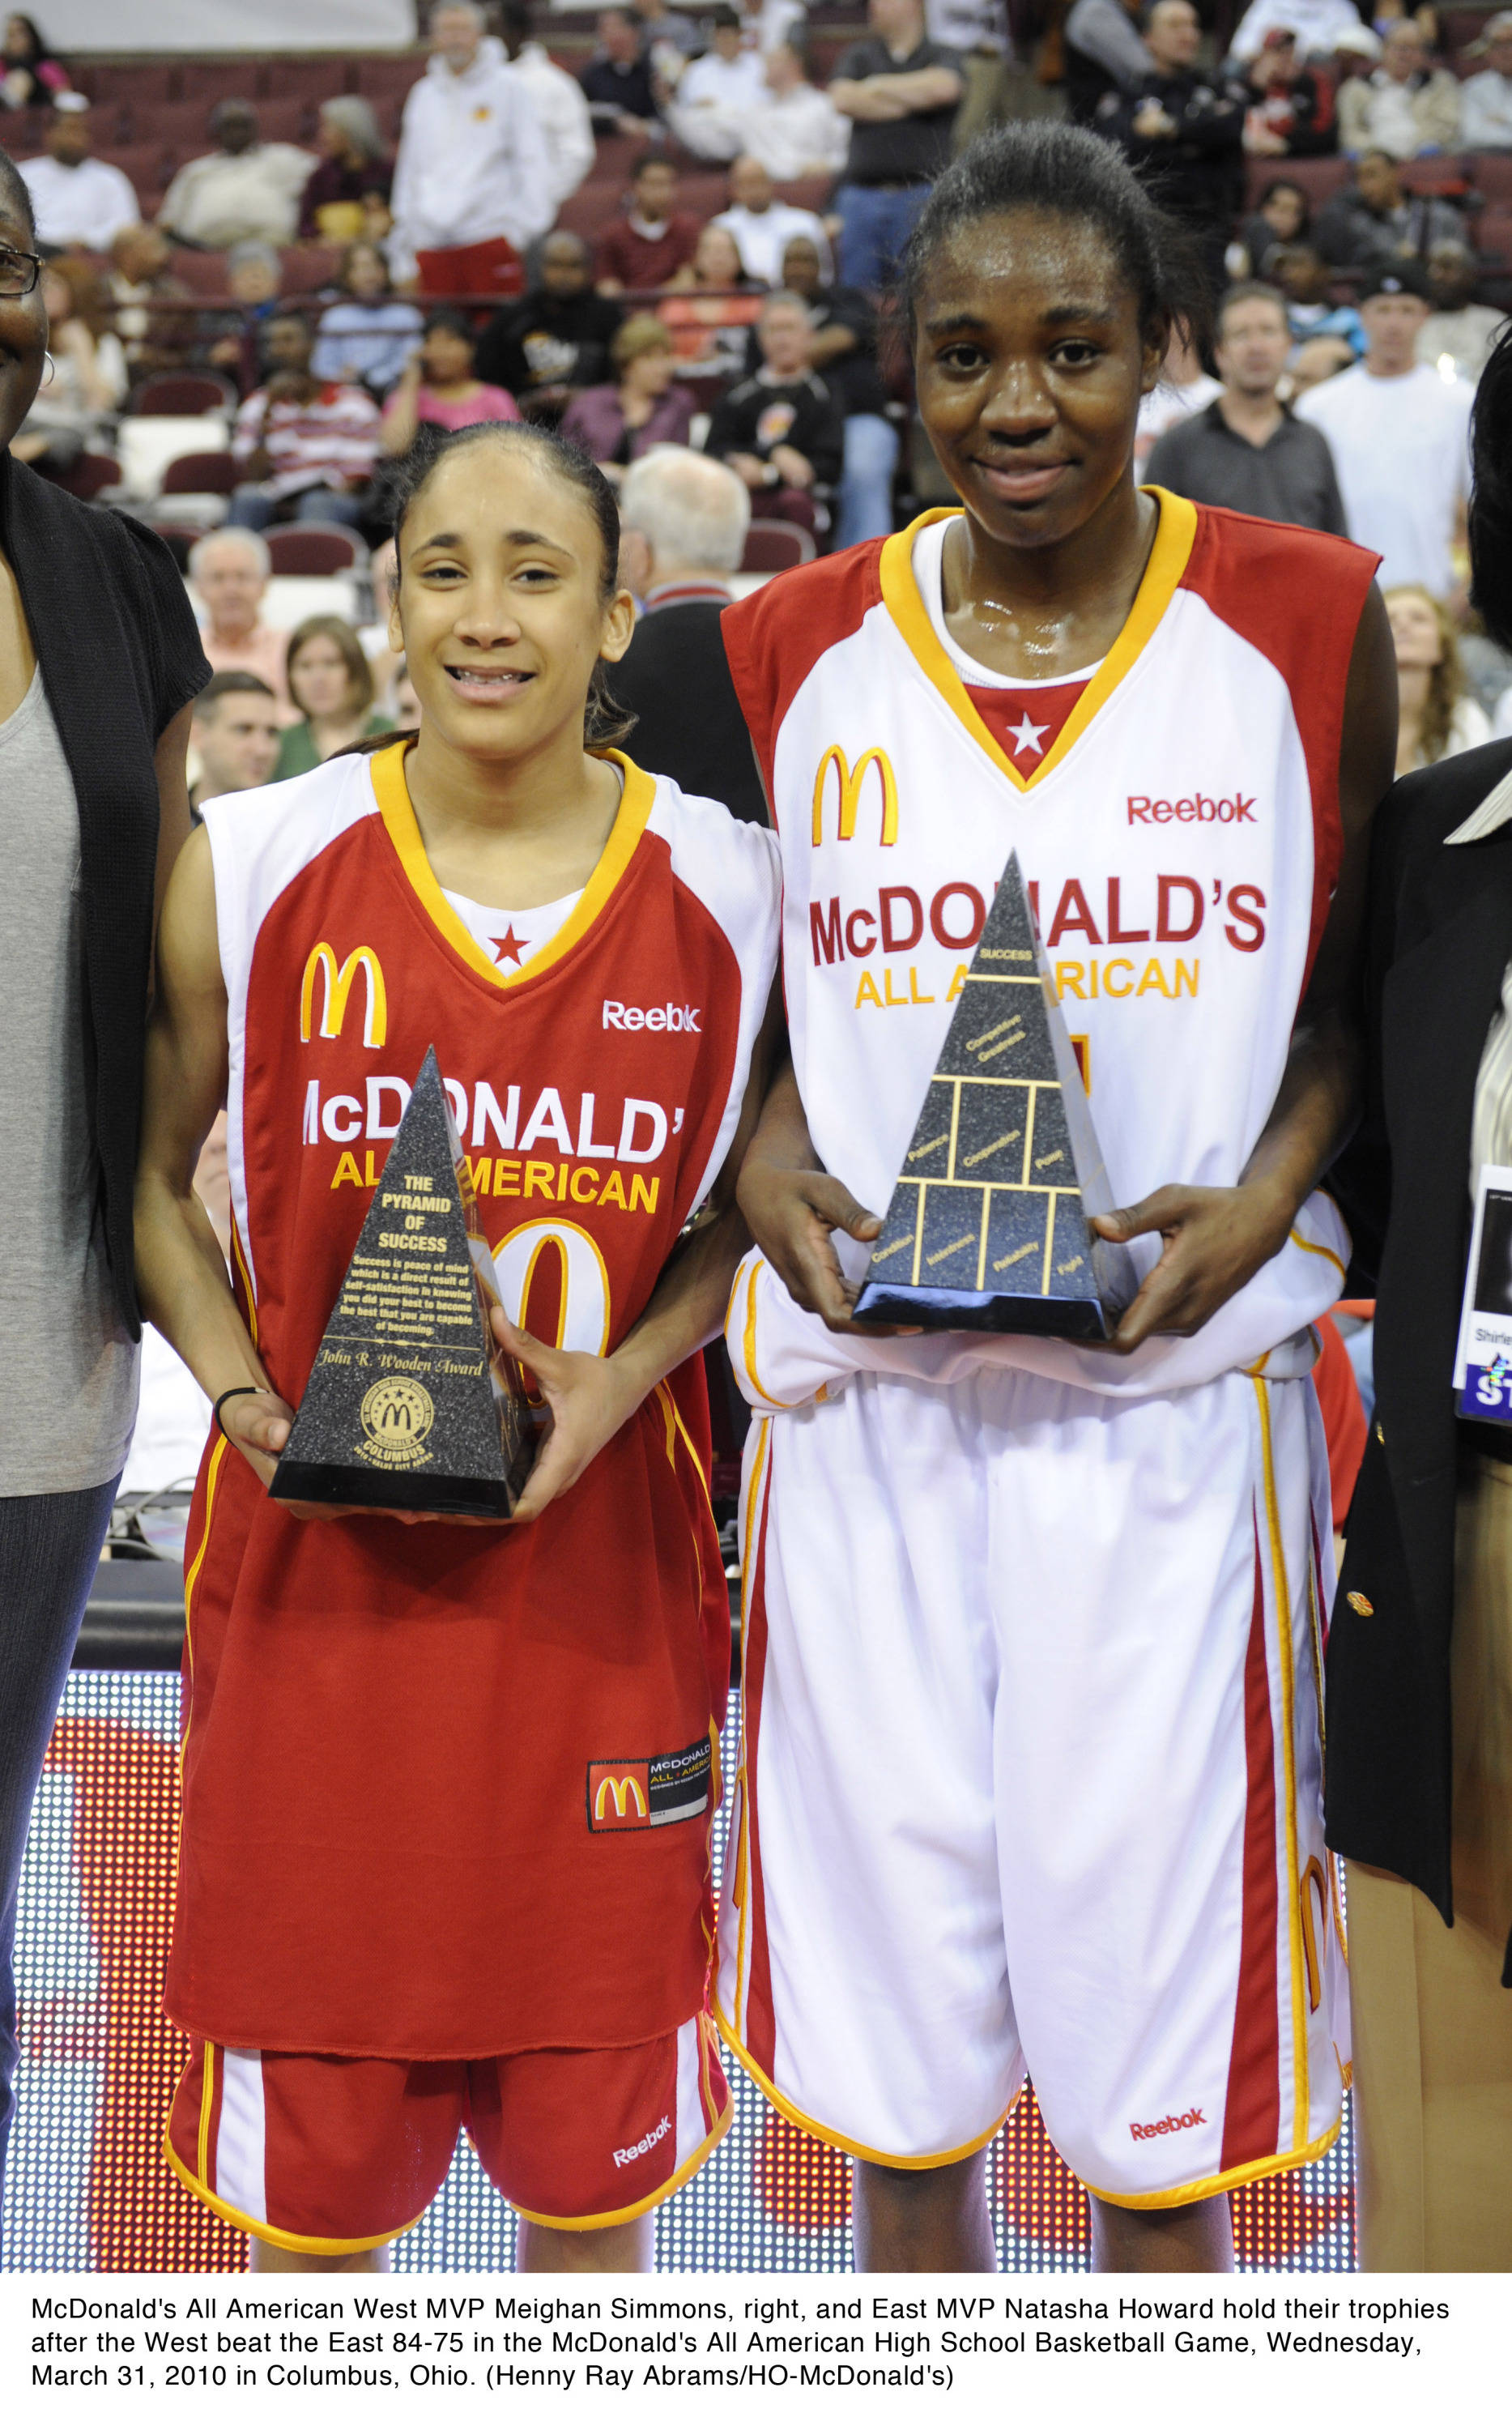 Sept. 21 ... McDonald's All American East MVP Natasha Howard (right) holds her trophy after the West beat the East 84-75 in the McDonald's All American High School Basketball Game, Wednesday, March 31, 2010. Howard is now a freshman basketball player at FSU. (Henny Ray Abrams/HO-McDonald's)